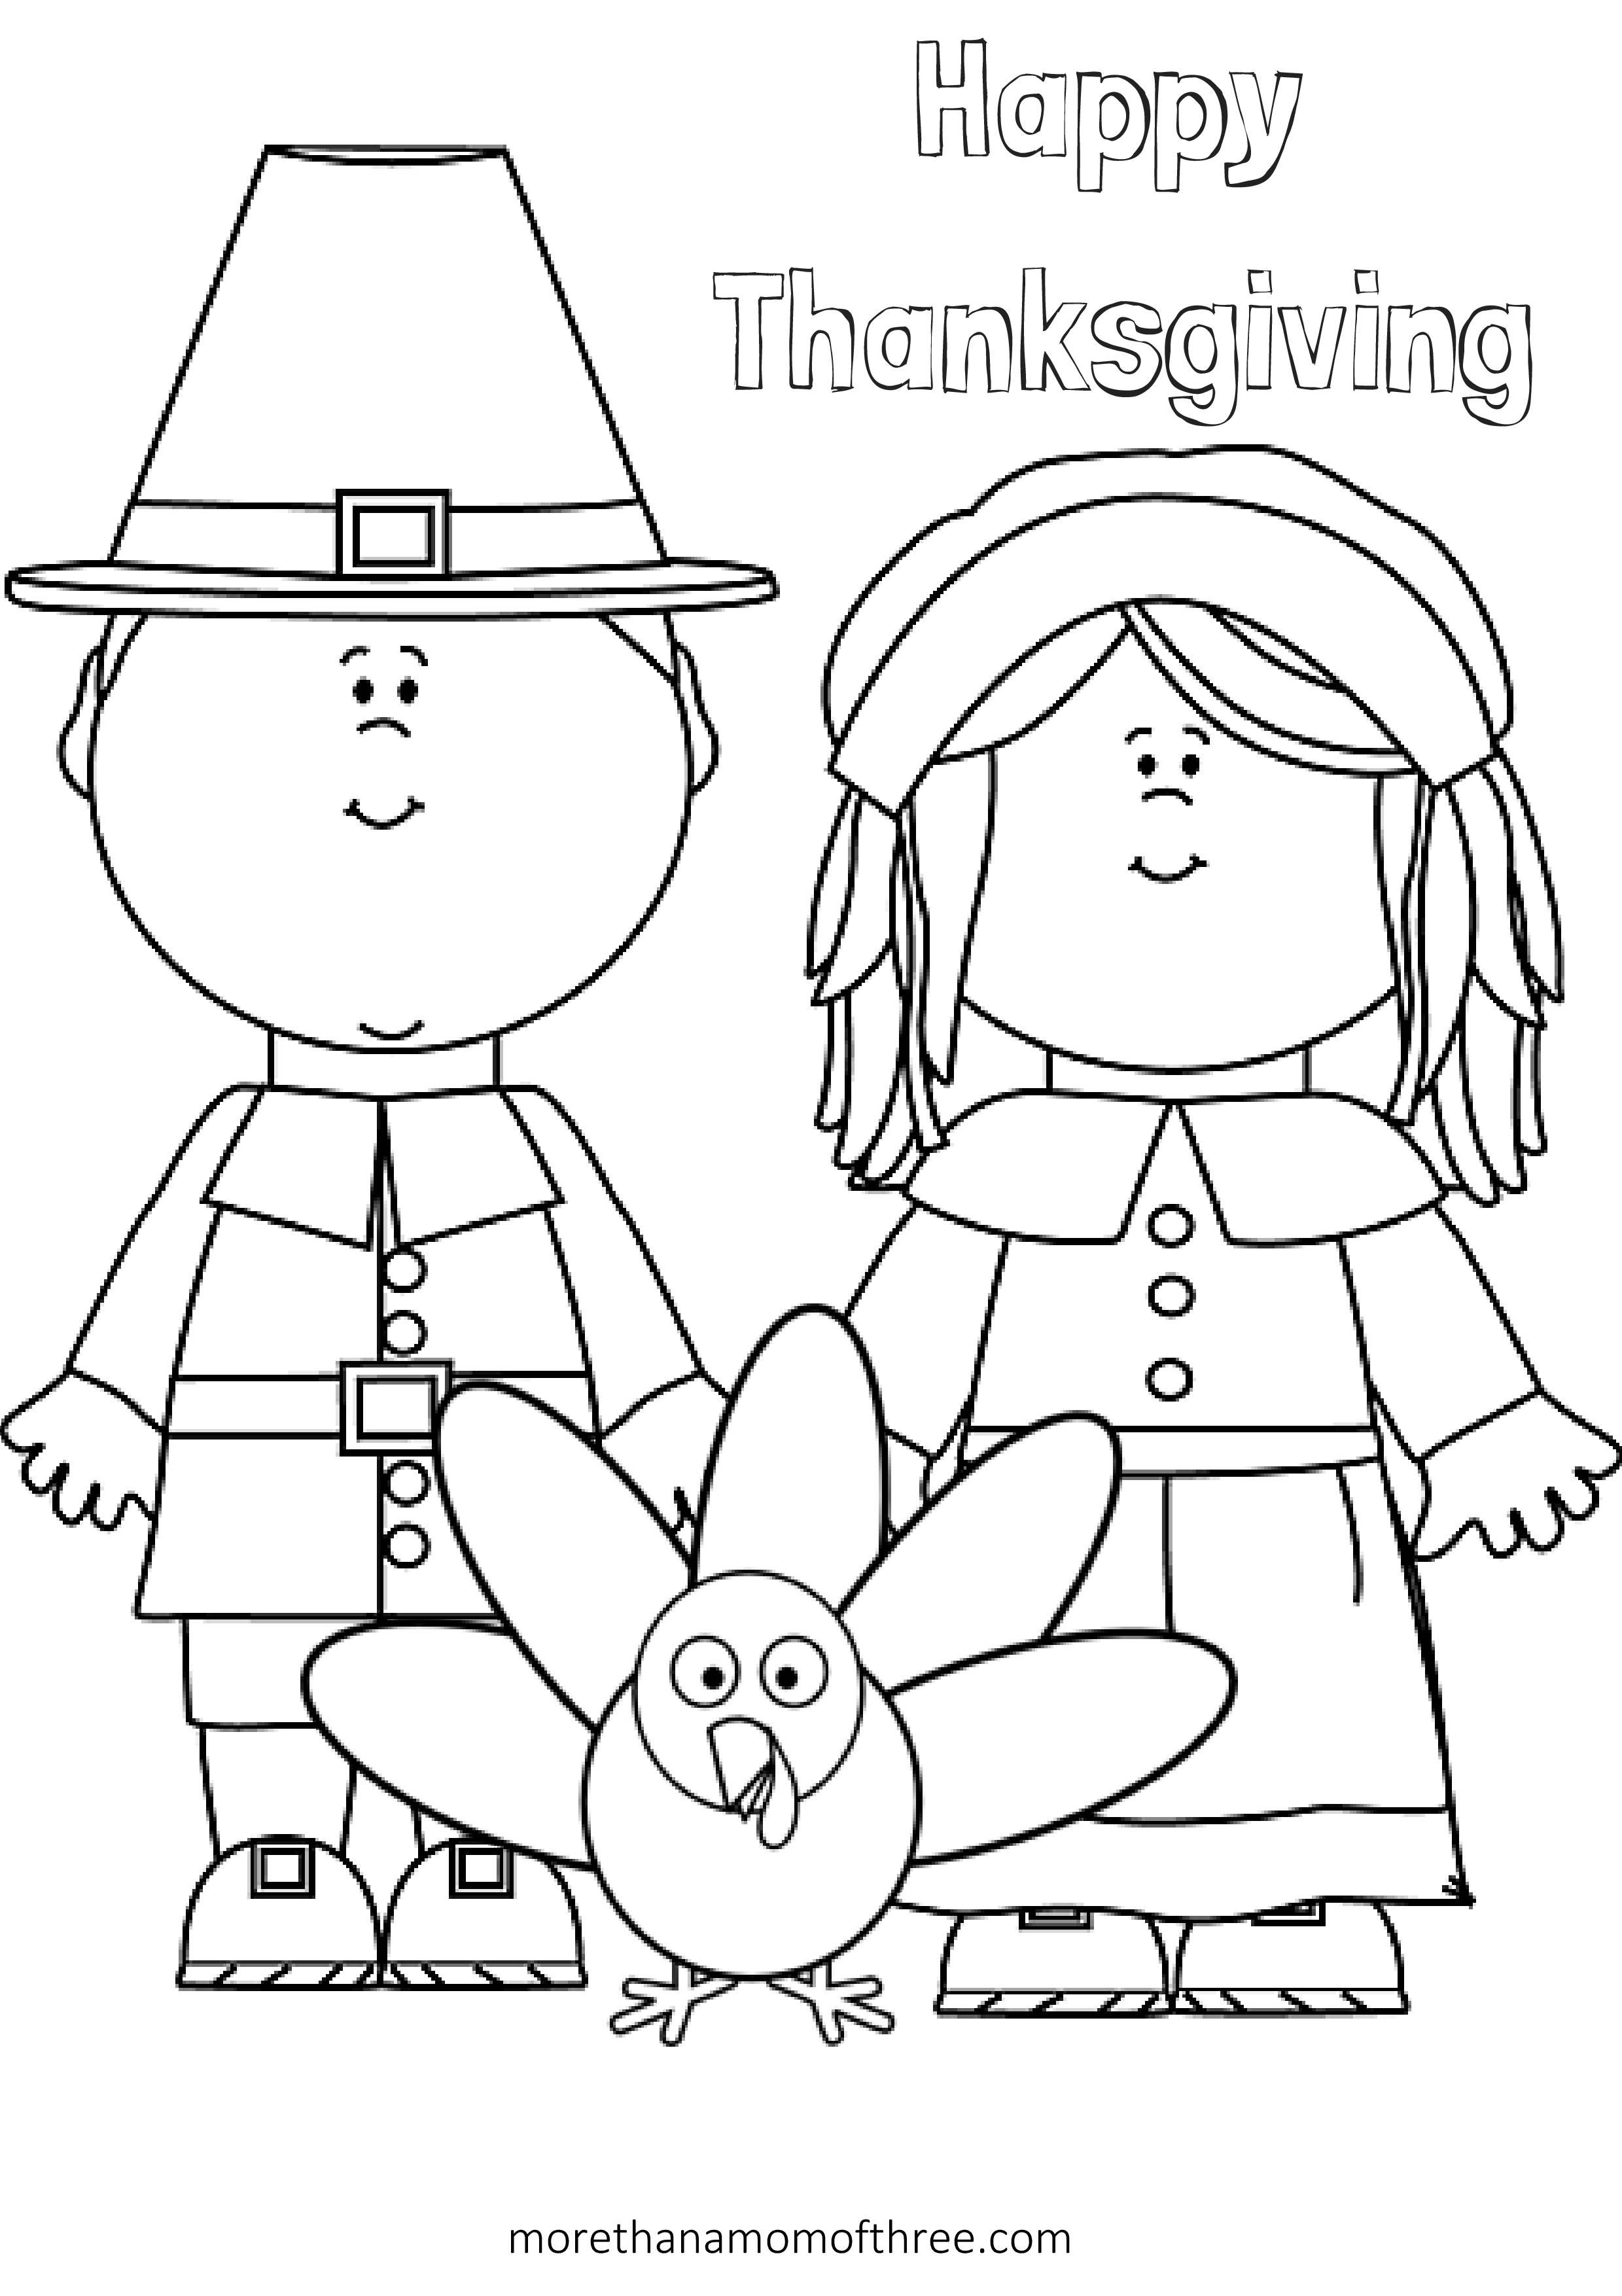 Cornucopia Coloring Pages Printable